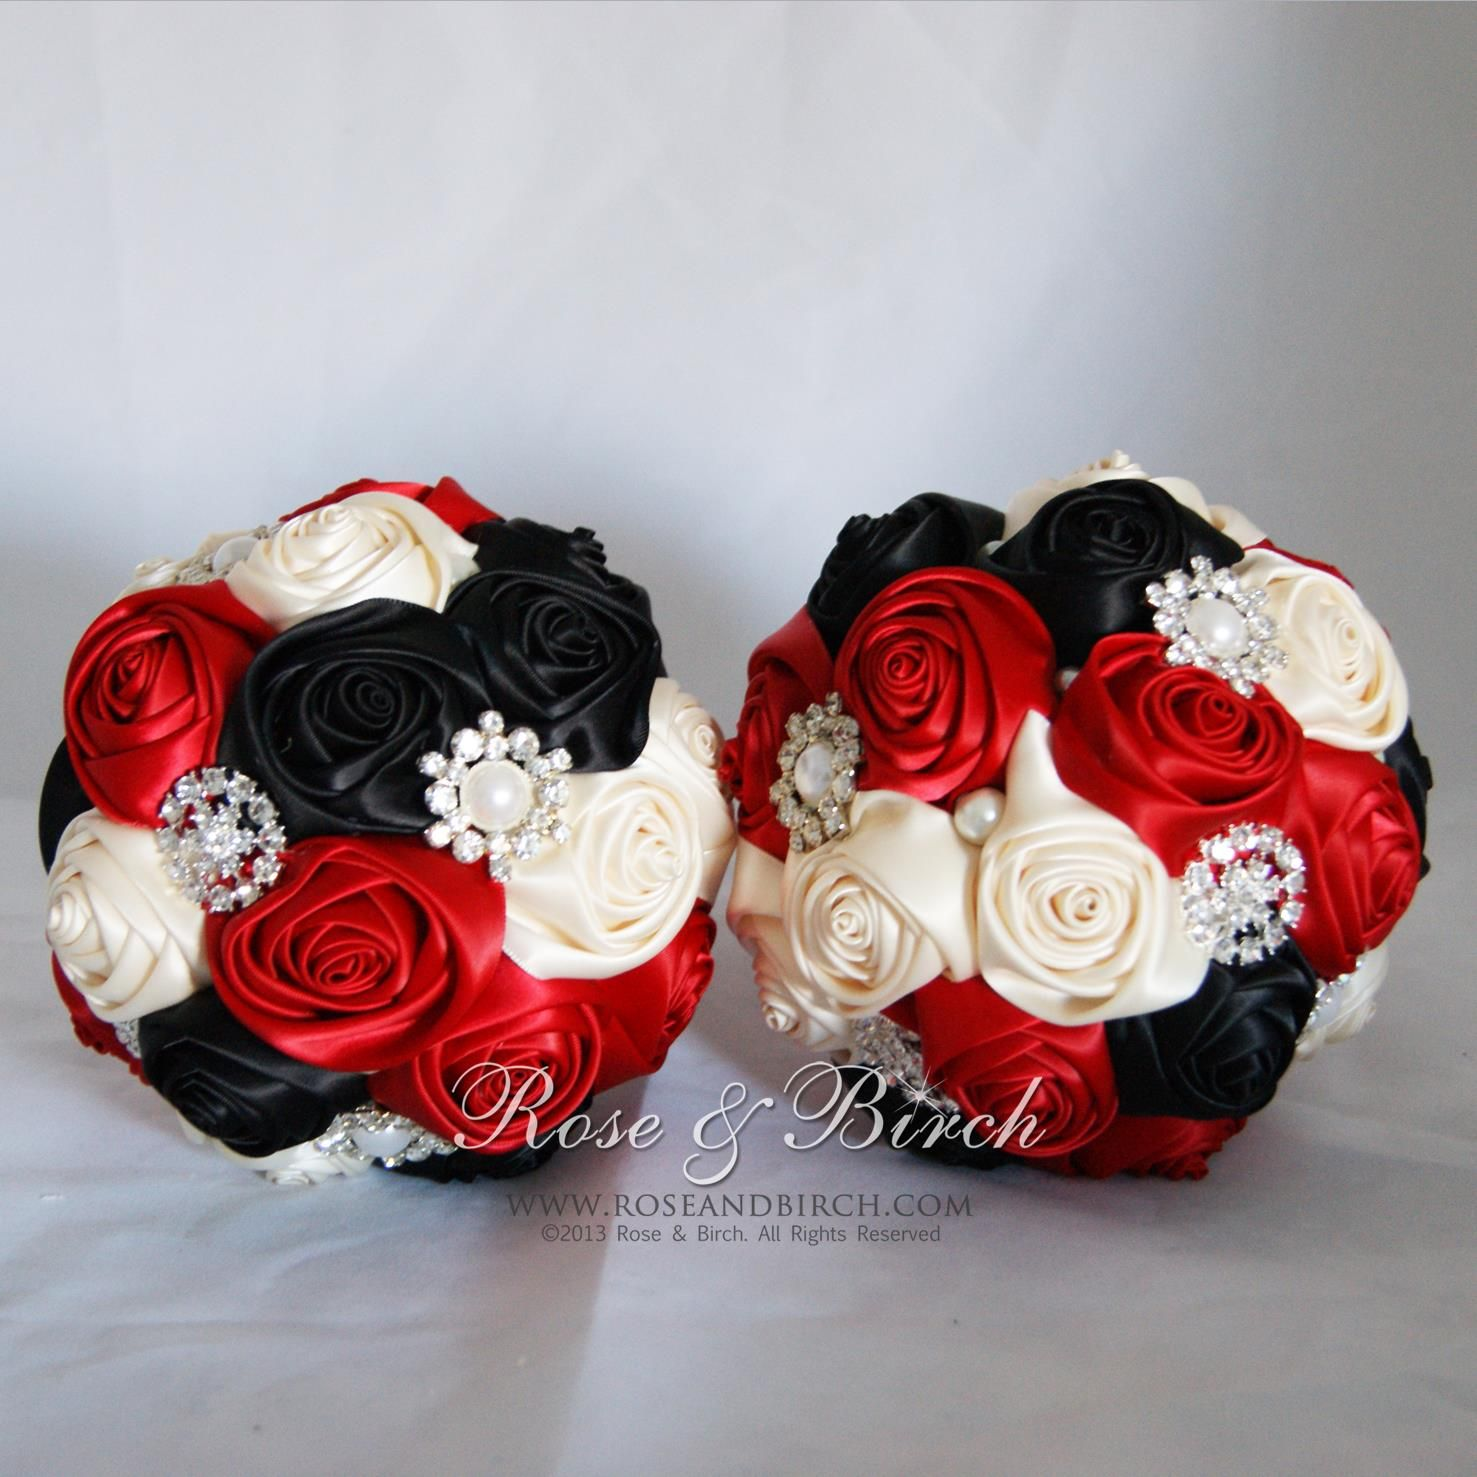 Small sized bridalwedding bouquets in red black and ivory with